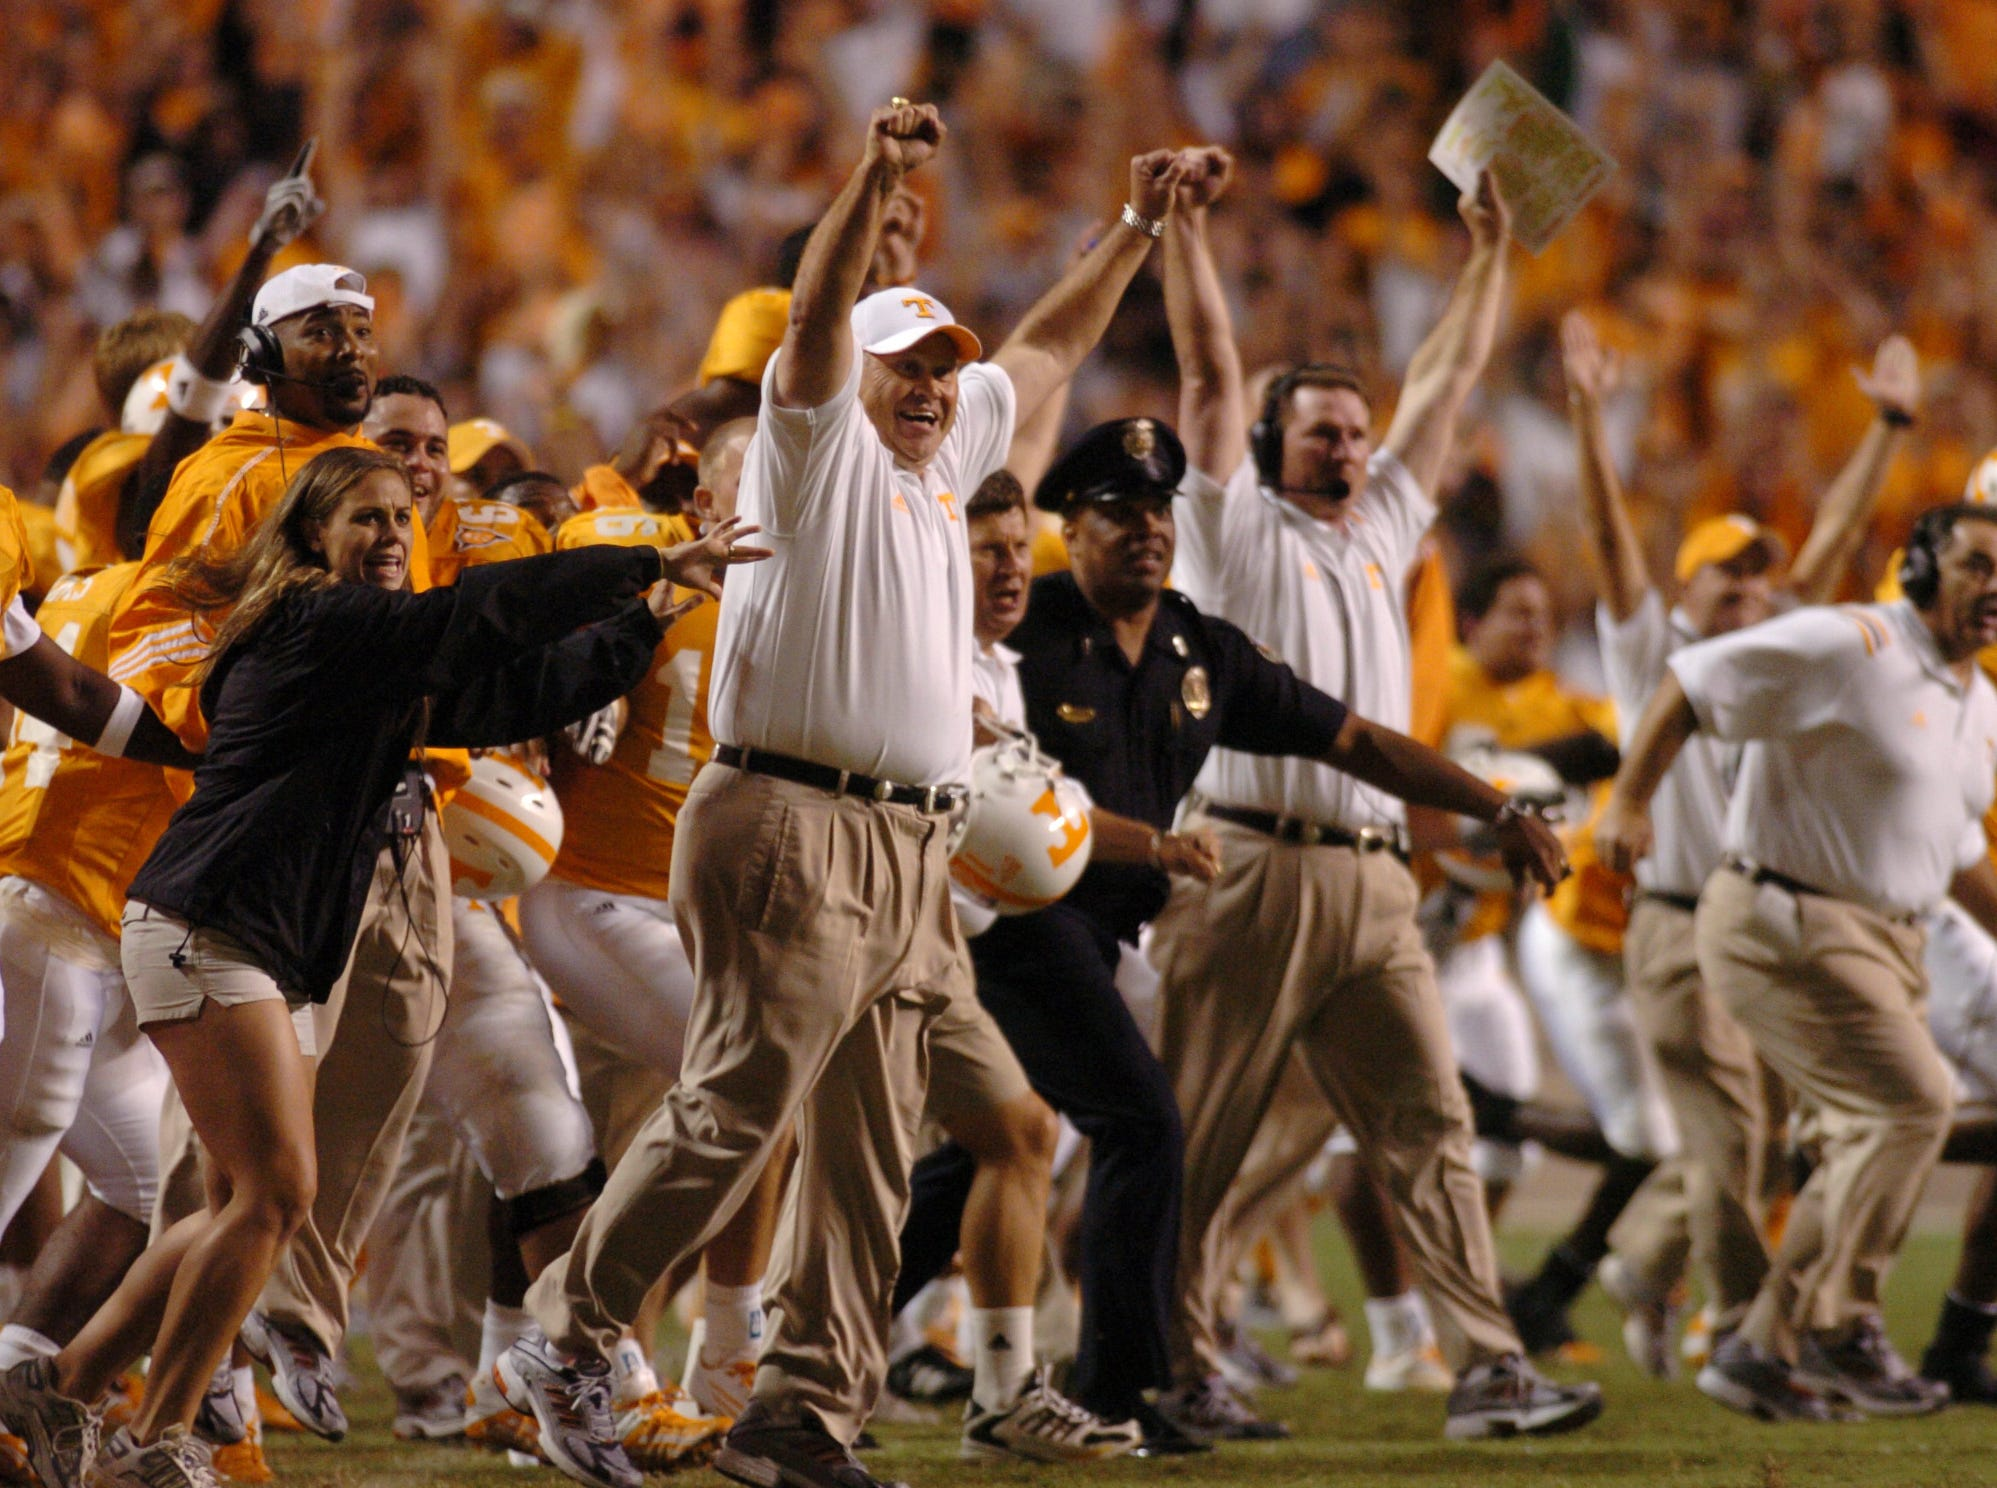 Tennessee's coach Phil Fulmer and the rest of Tennessee's sideline pile onto the field after James Wilhoit's game-winning field goal kick against Florida at Neyland Stadium. 9/18/2004